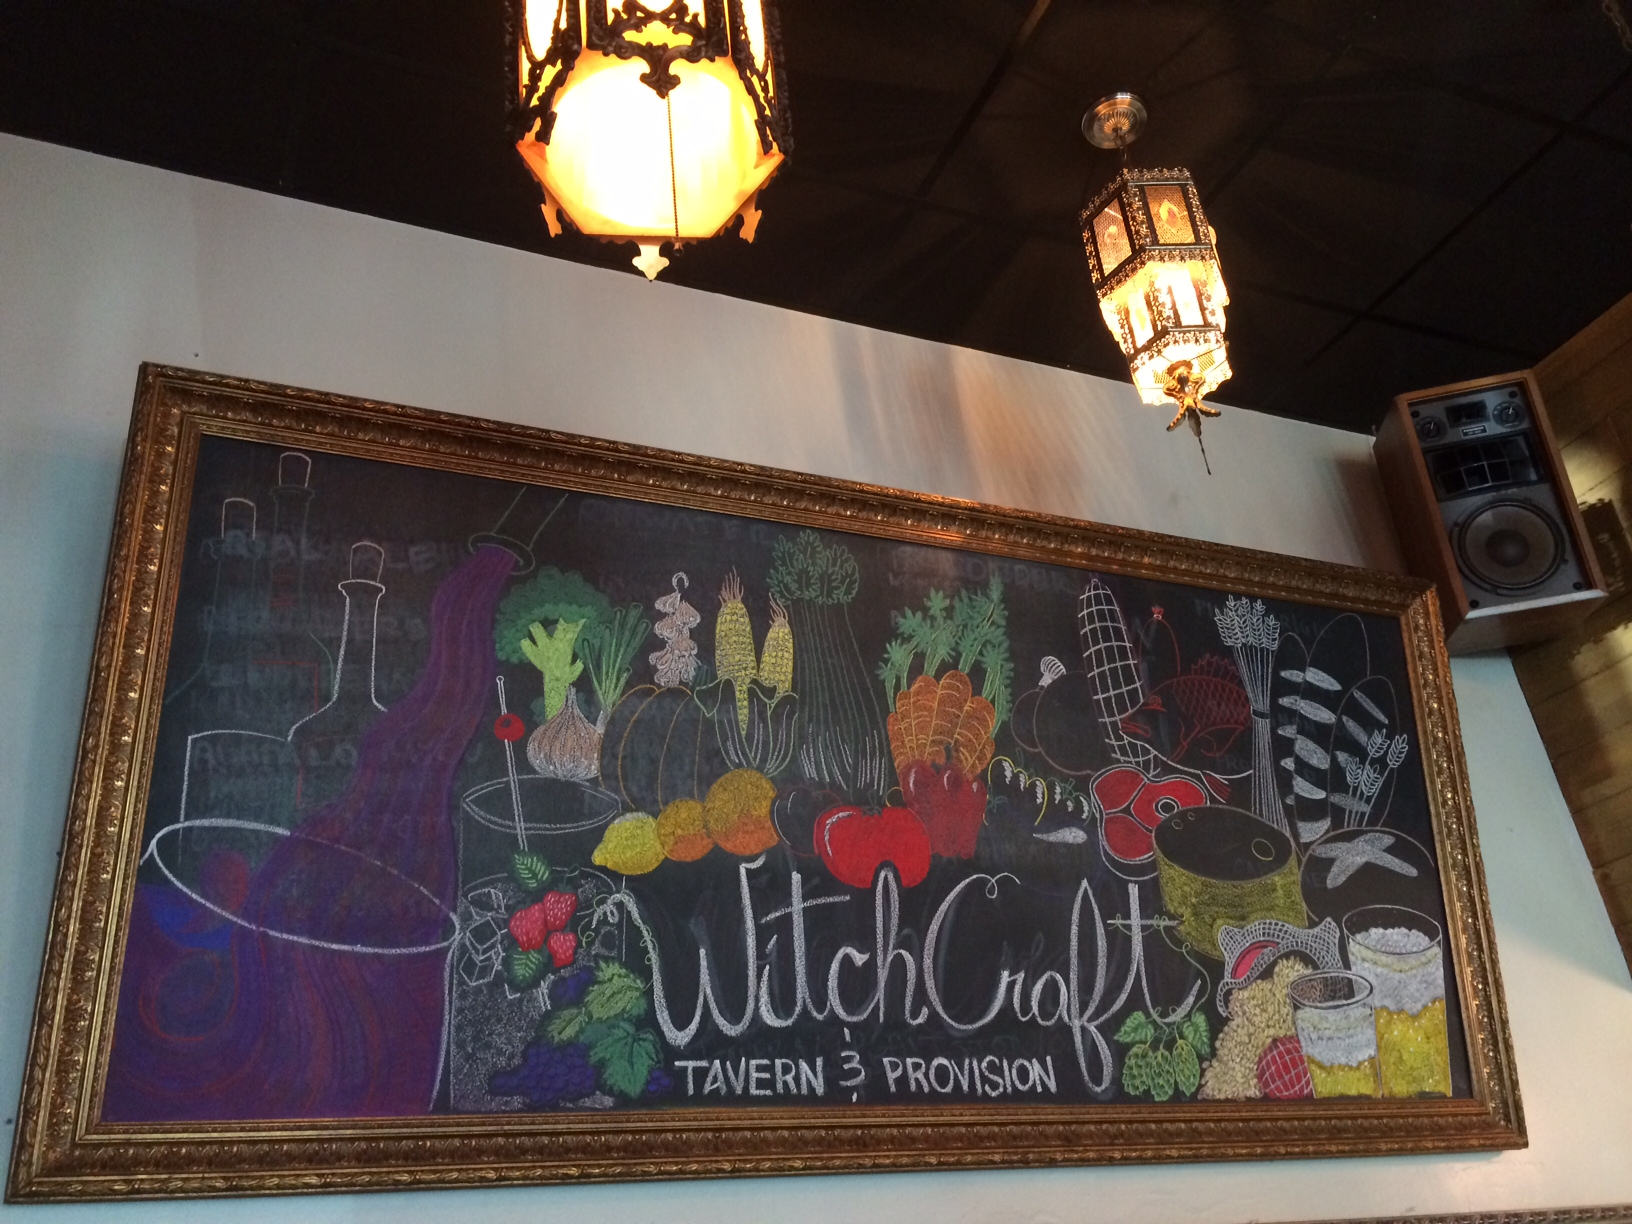 Witchcraft Tavern and Provisions Co.